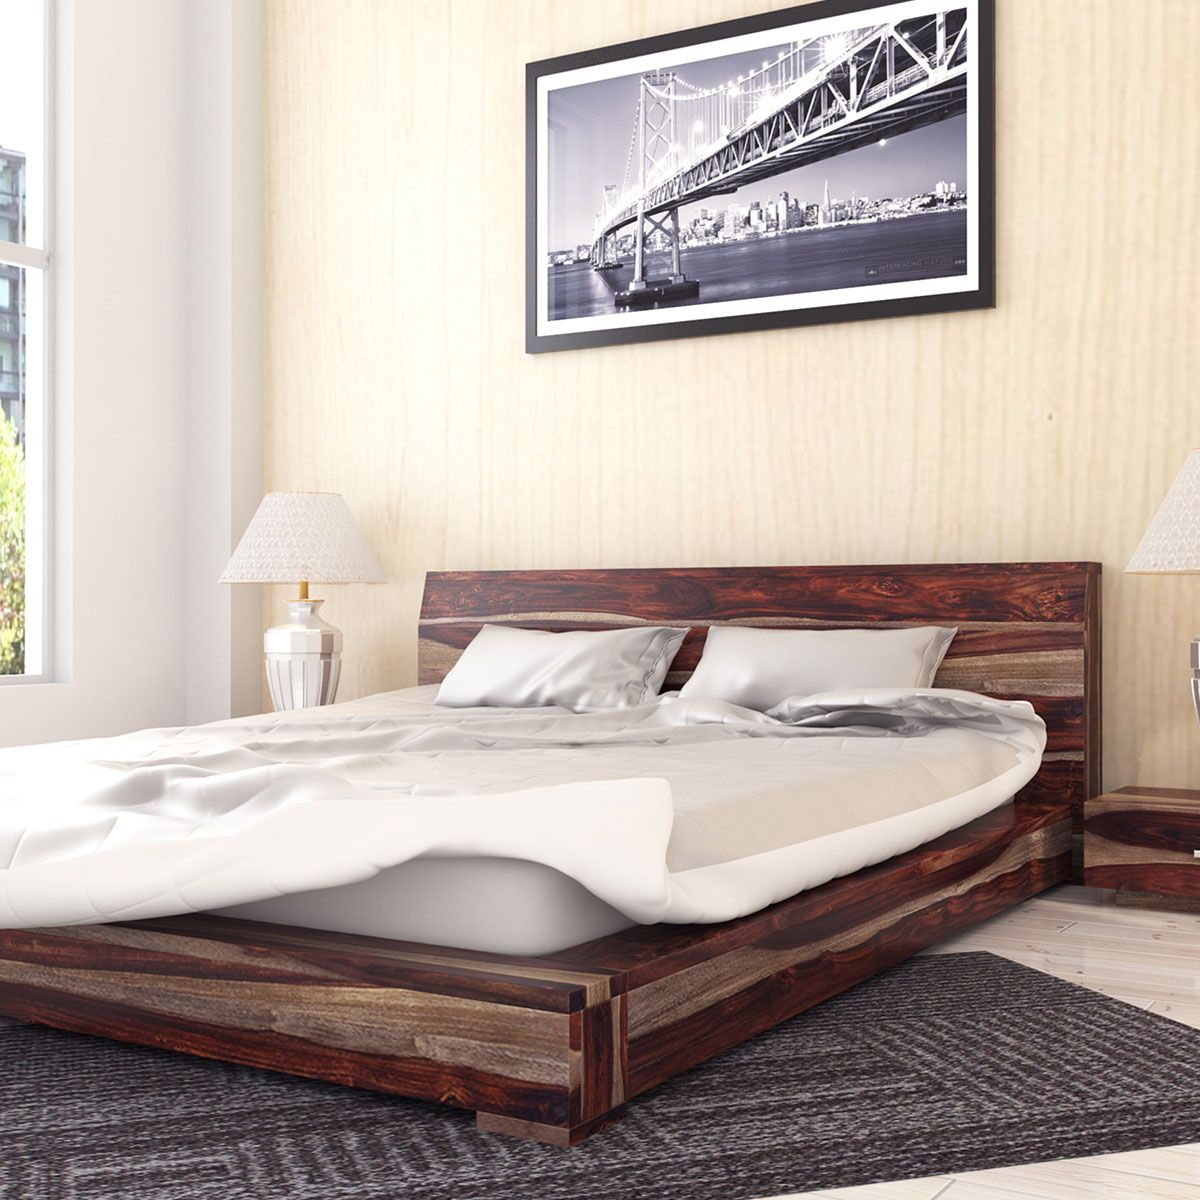 The Sierra Nevada Handcrafted Solid Wood Platform Bed Features A